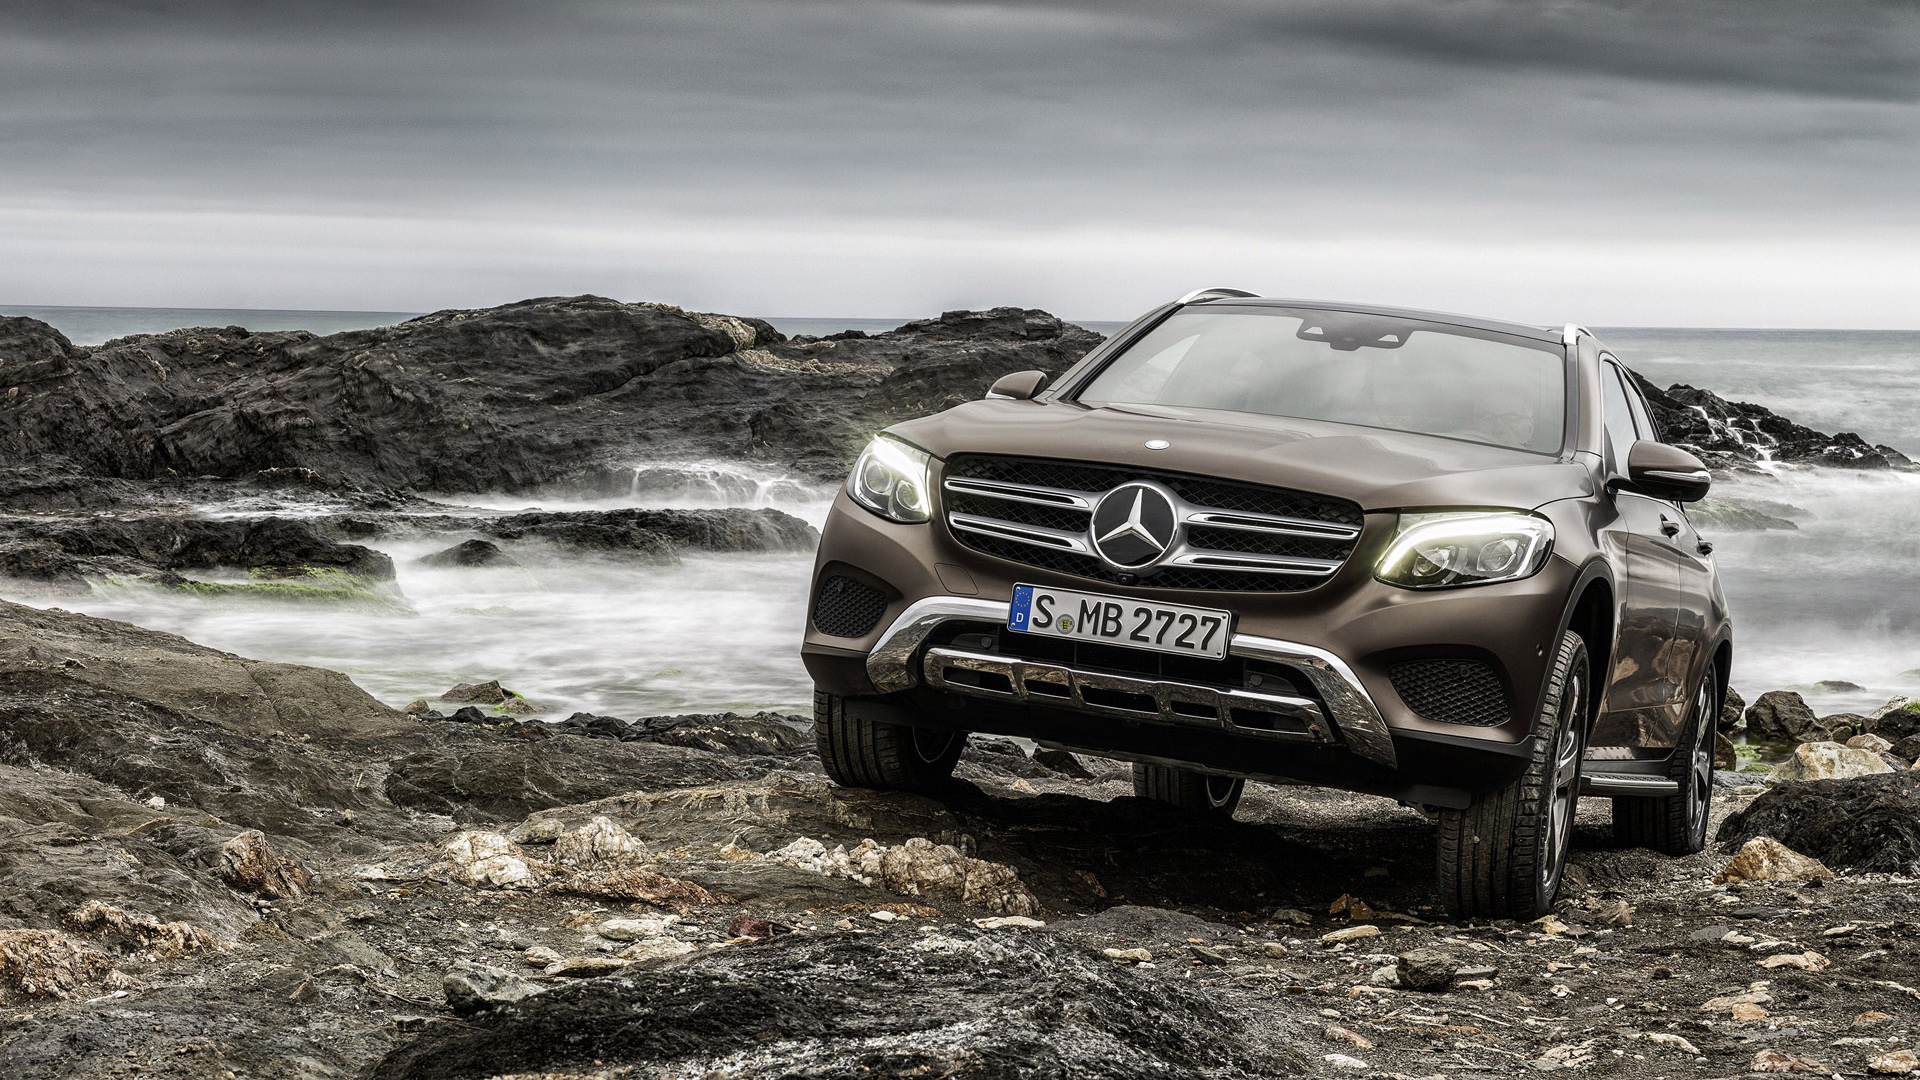 2016 mercedes benz glc wallpaper | hd car wallpapers | id #5423